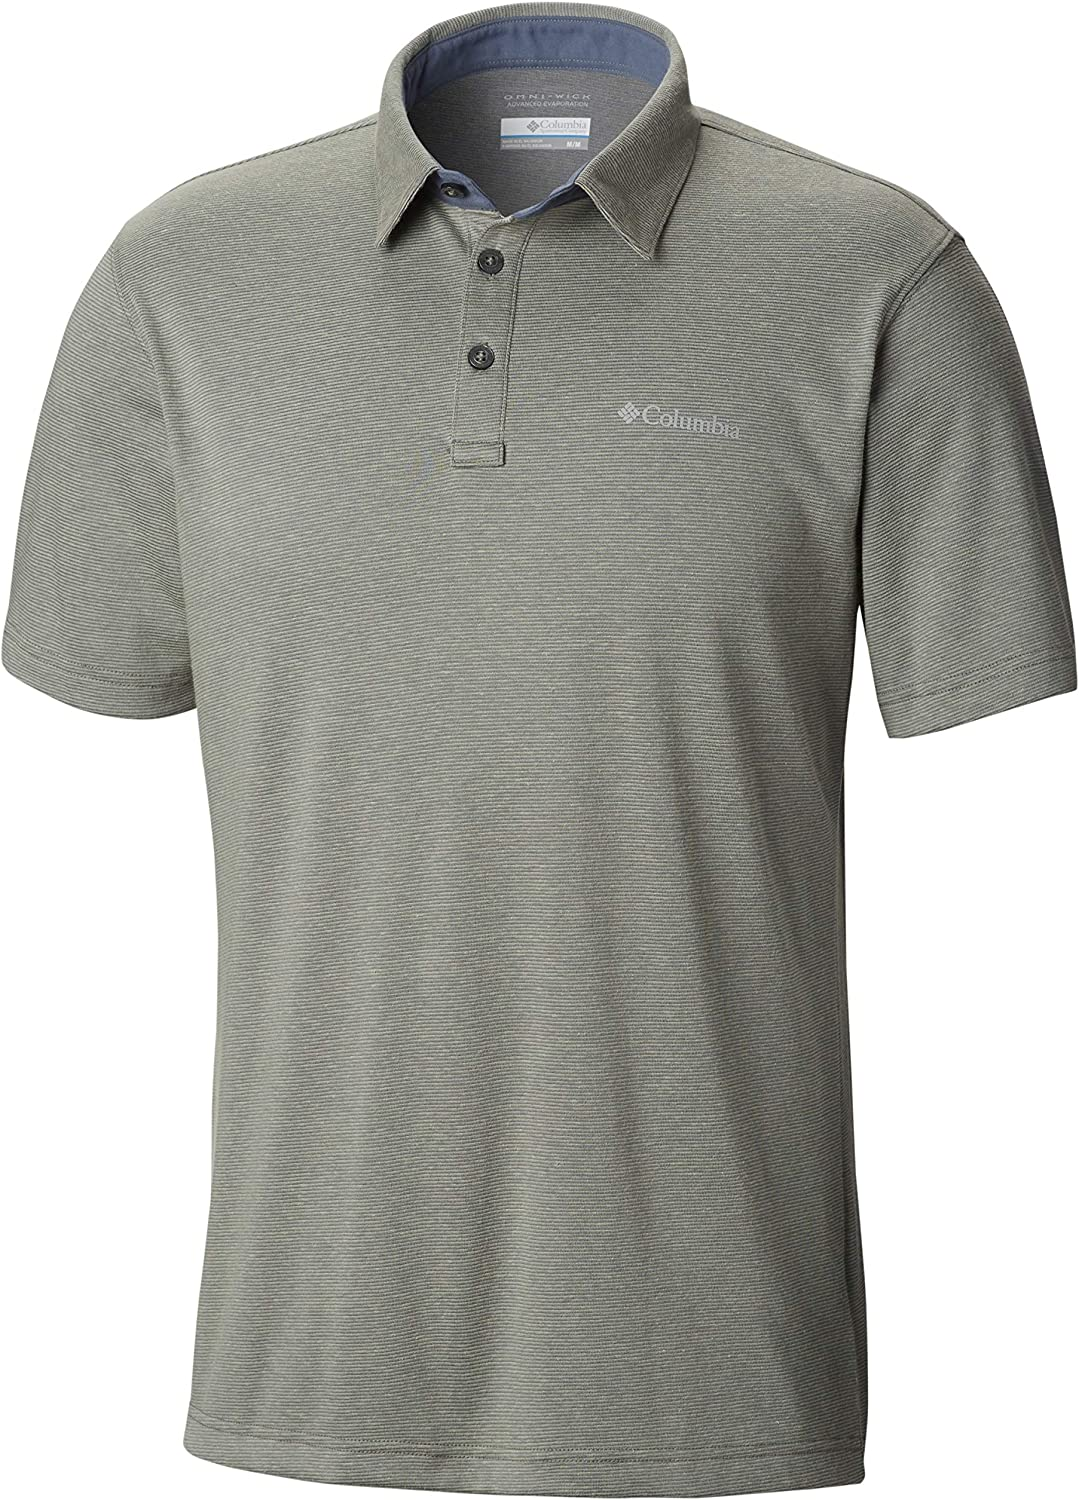 Columbia Men's Thistletown Park Polo, Uv Sun Protection, Breathable: Clothing